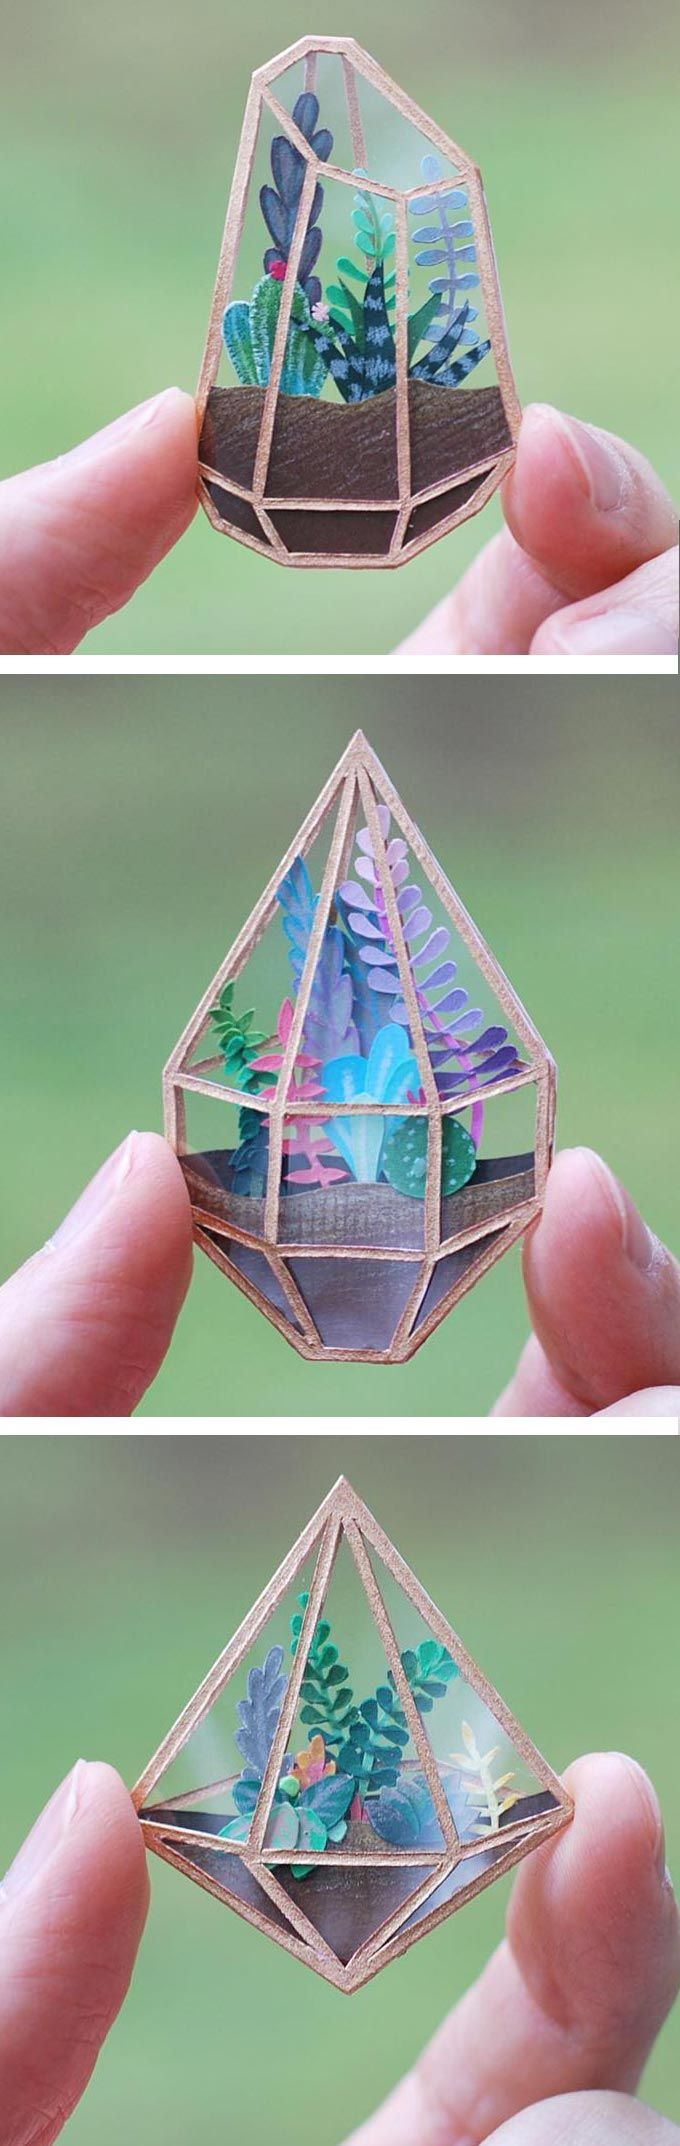 Papercut terrariums miniature plants, makes me want to try adding paper punched leaves to my resin art. Cameron Garland.